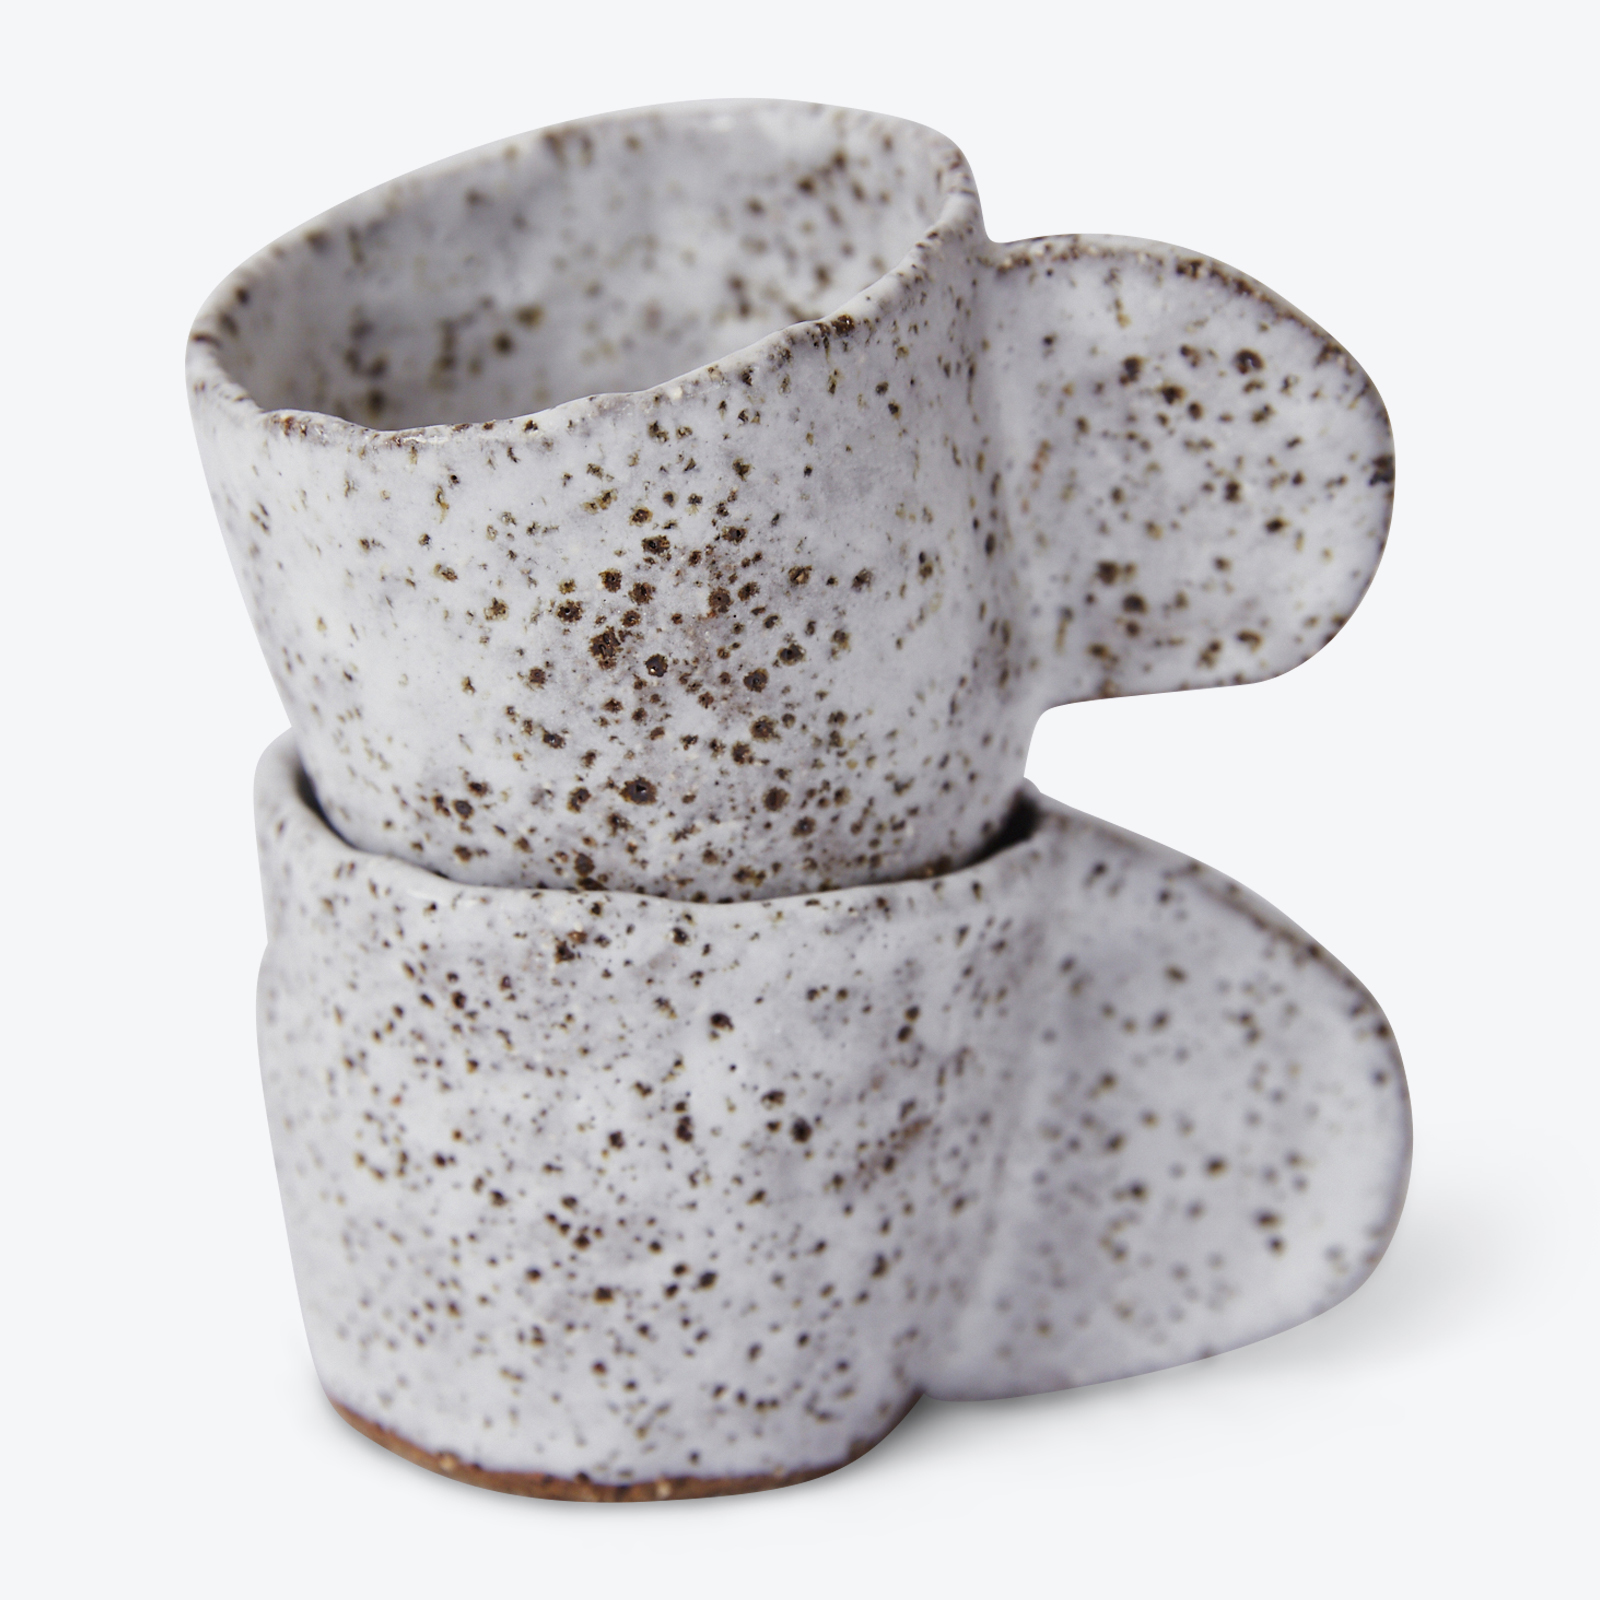 Crescent Espresso Mug In Speckled Stoneware By Gretel Corrie 02.jpg